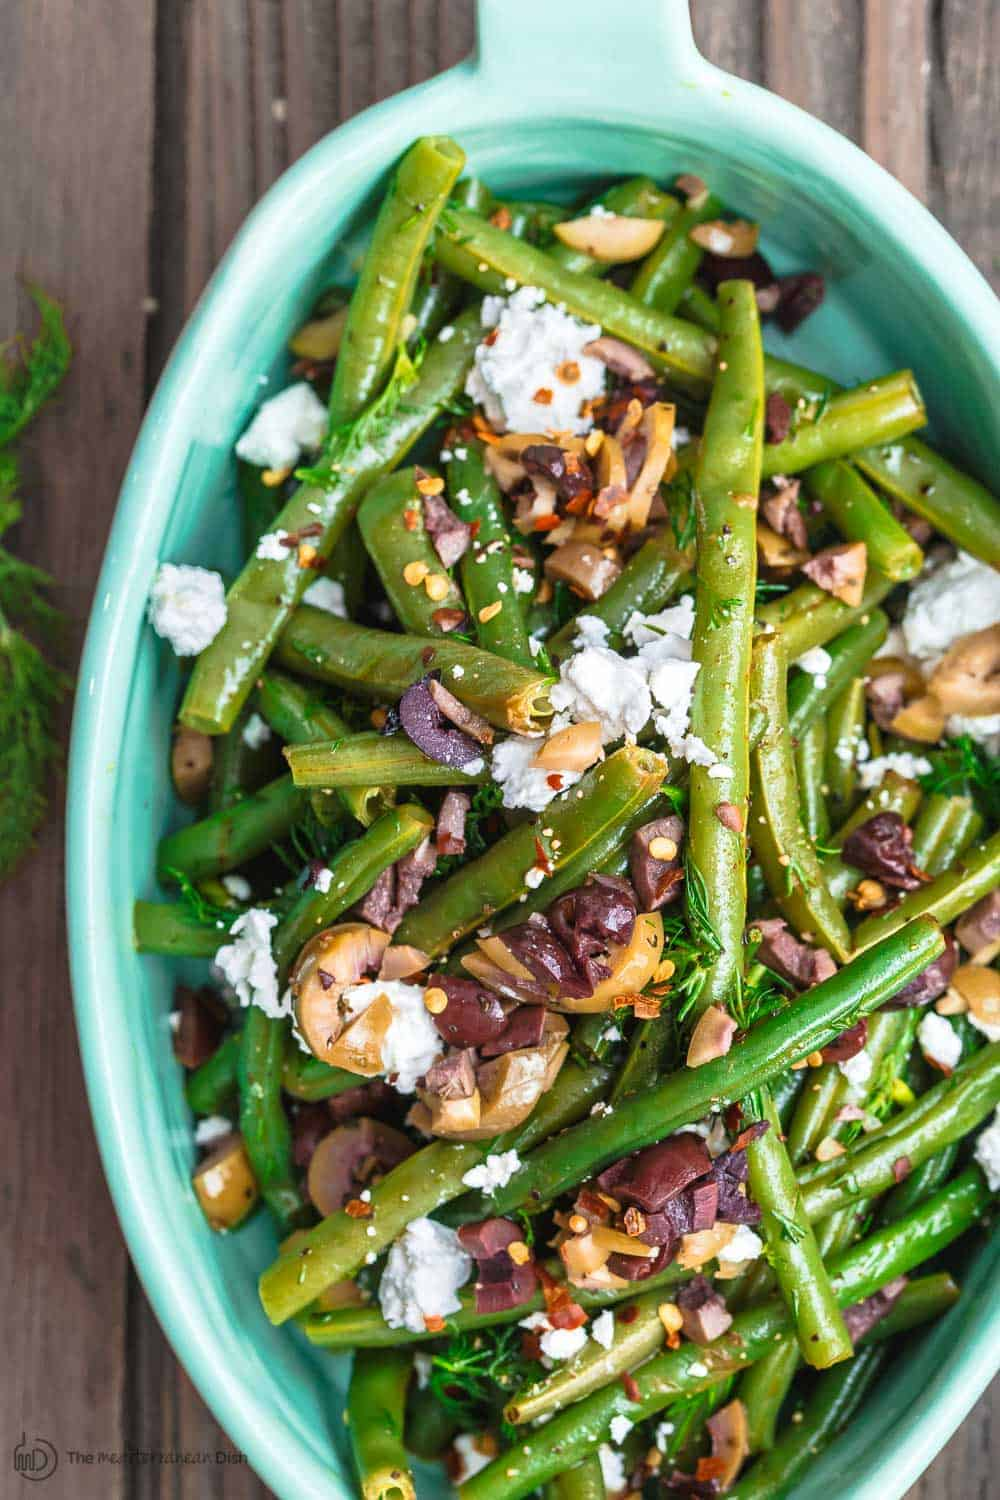 Greek Green Bean Salad Recipe | The Mediterranean Dish. Perfectly tender, flavor-packed green bean salad prepared Greek style. A garlicy, zesty dressing pulls it together, and a sprinkle of feta and chopped marinated olives take it to a new level of delicious. Get the easy recipe on themediterraneandish.com #greenbeans #greekfood #greekrecipe #mediterraneanrecipe #mediterraneandiet